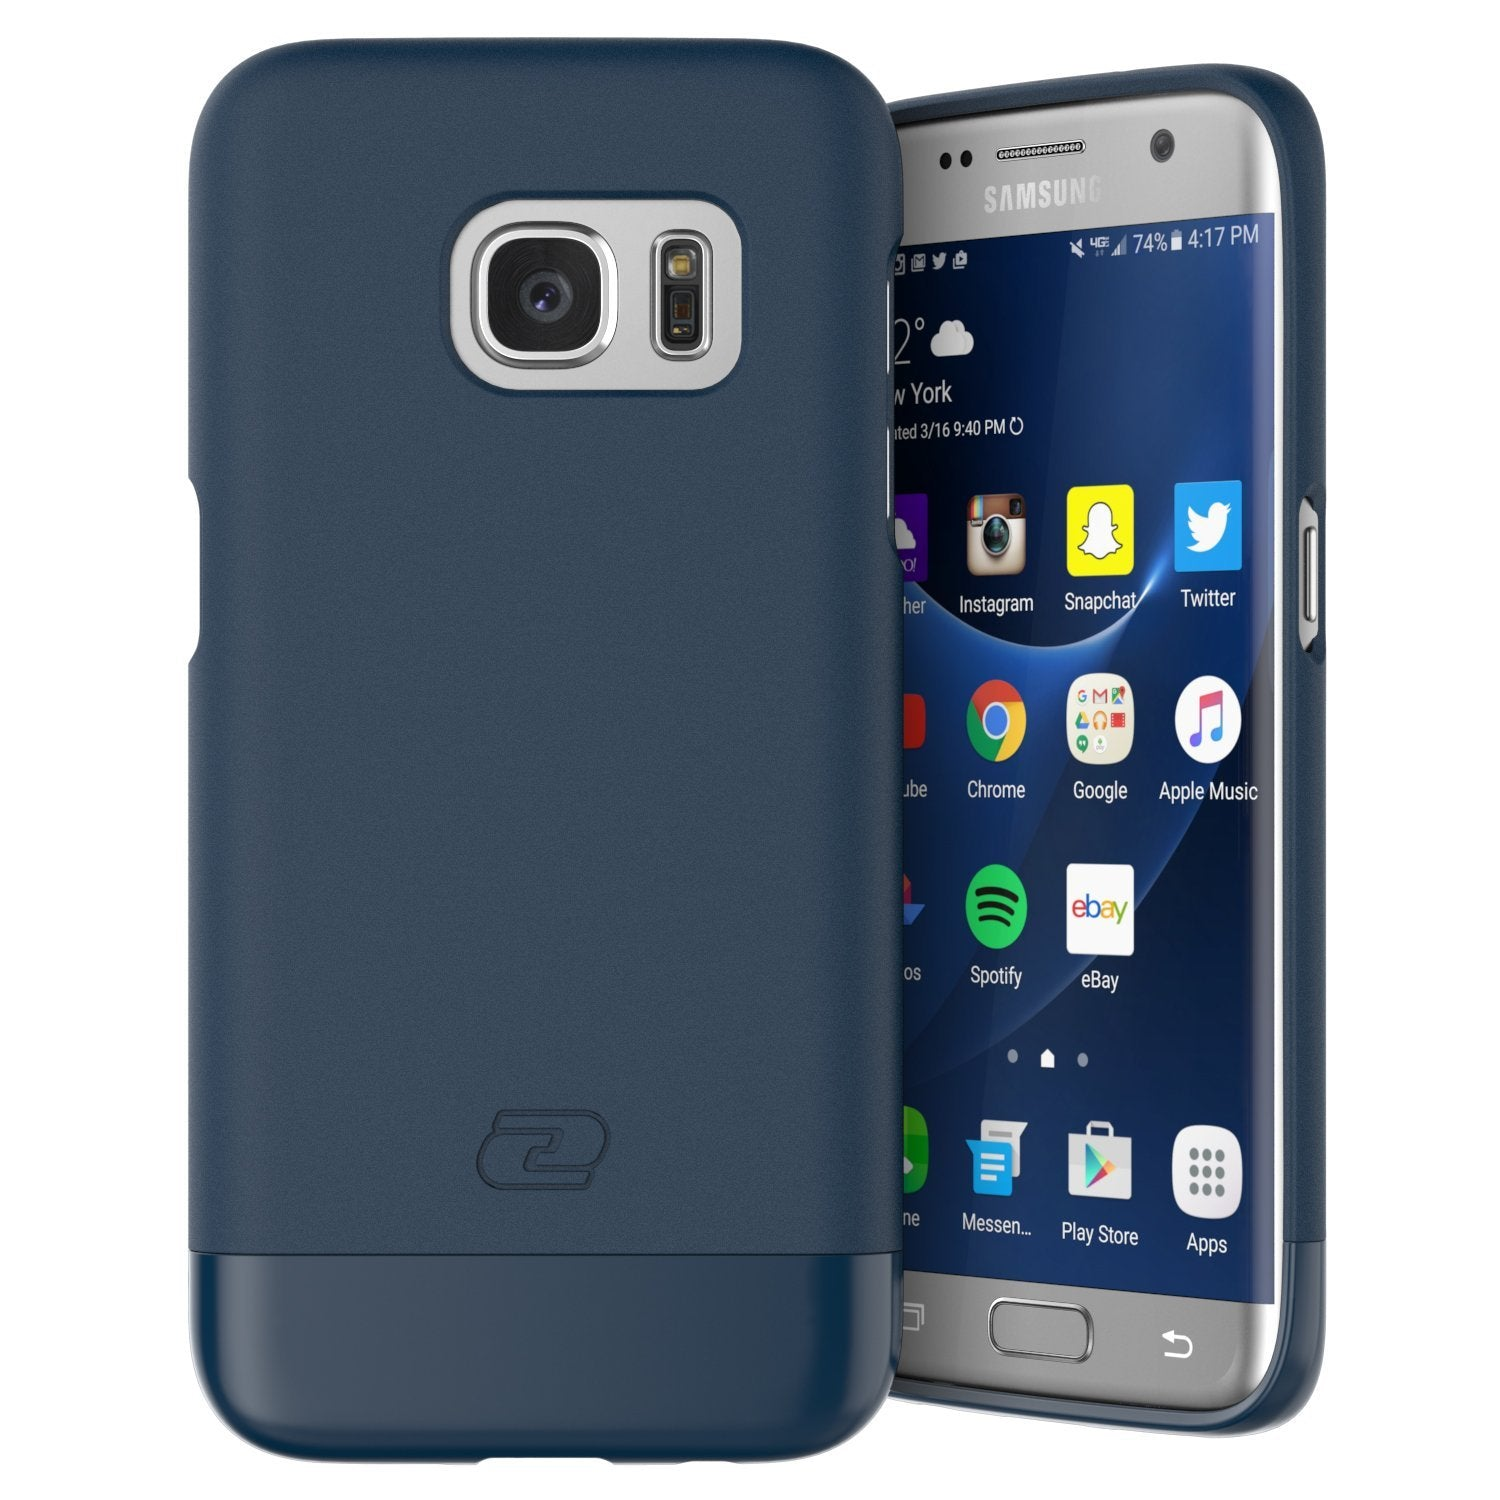 Samsung Galaxy S7 EDGE Case, Encased Ultra-thin [SlimSHIELD] (2016) Ultimate Style + Protection